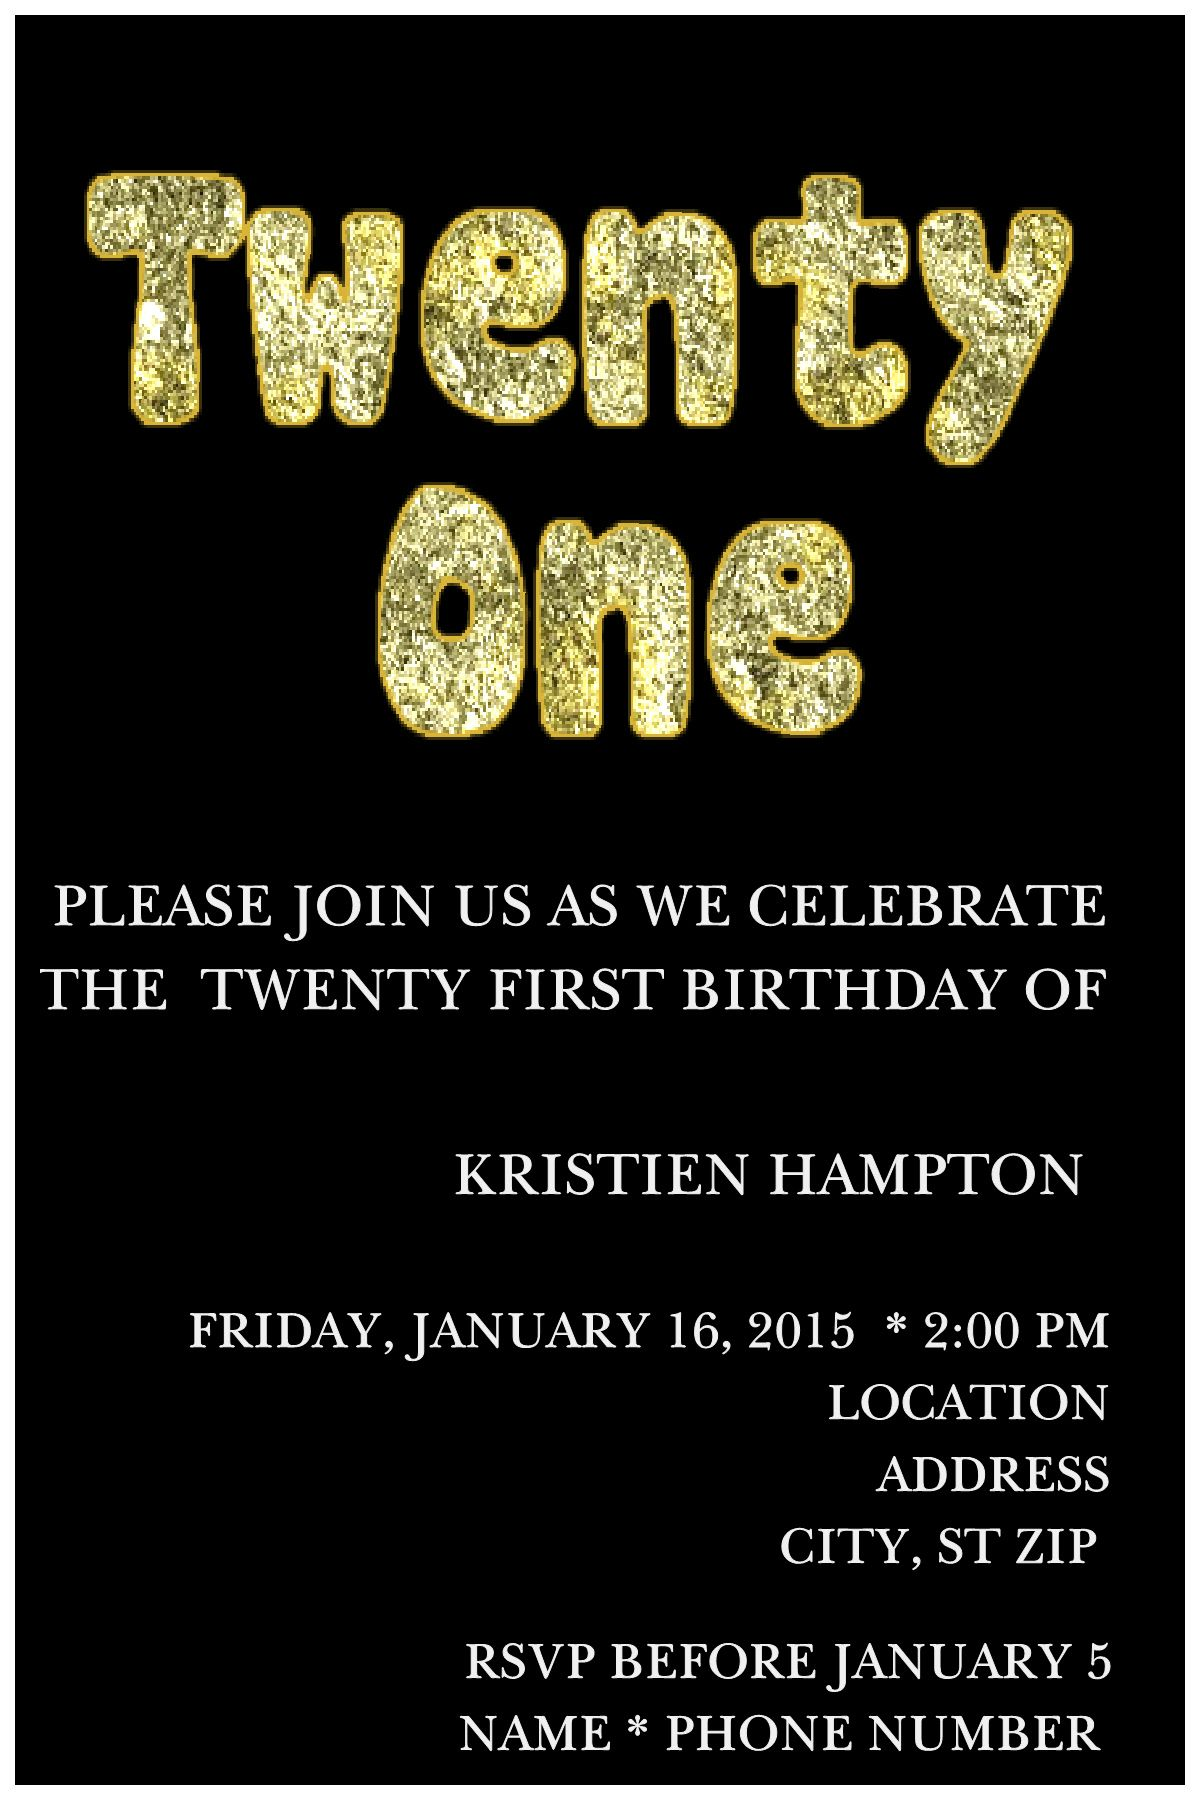 21st Birthday Invitation- Click on the image twice to place orders ...